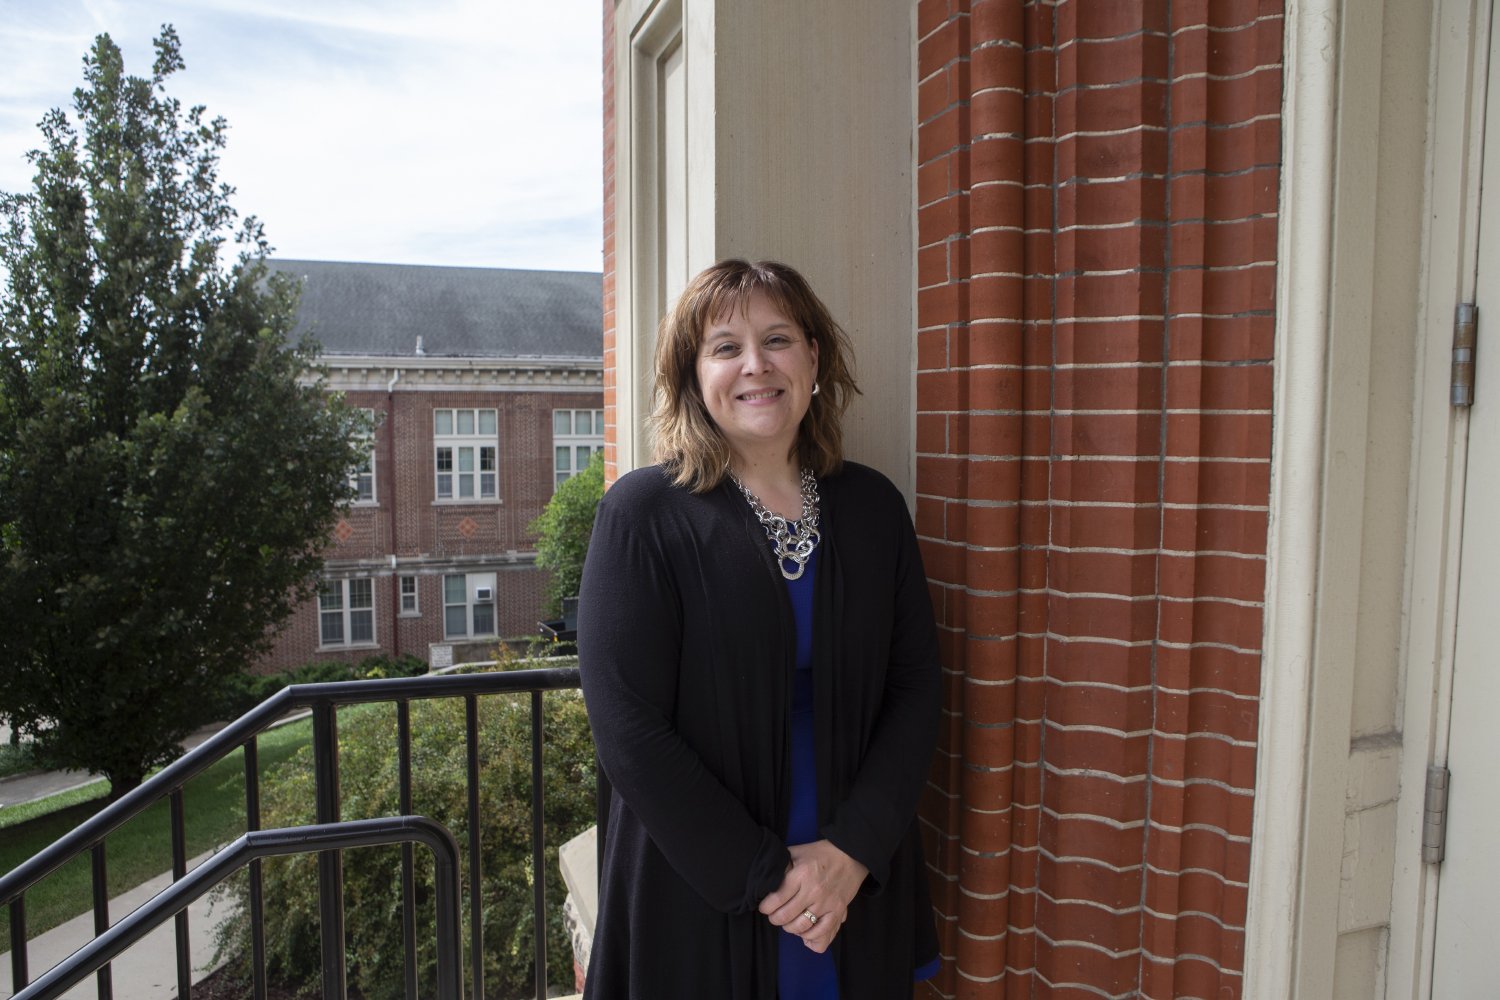 Academic Support and Retention assistant director Angie Lamb poses for a portrait outside of Calvin Hall on Sept. 19, 2019.